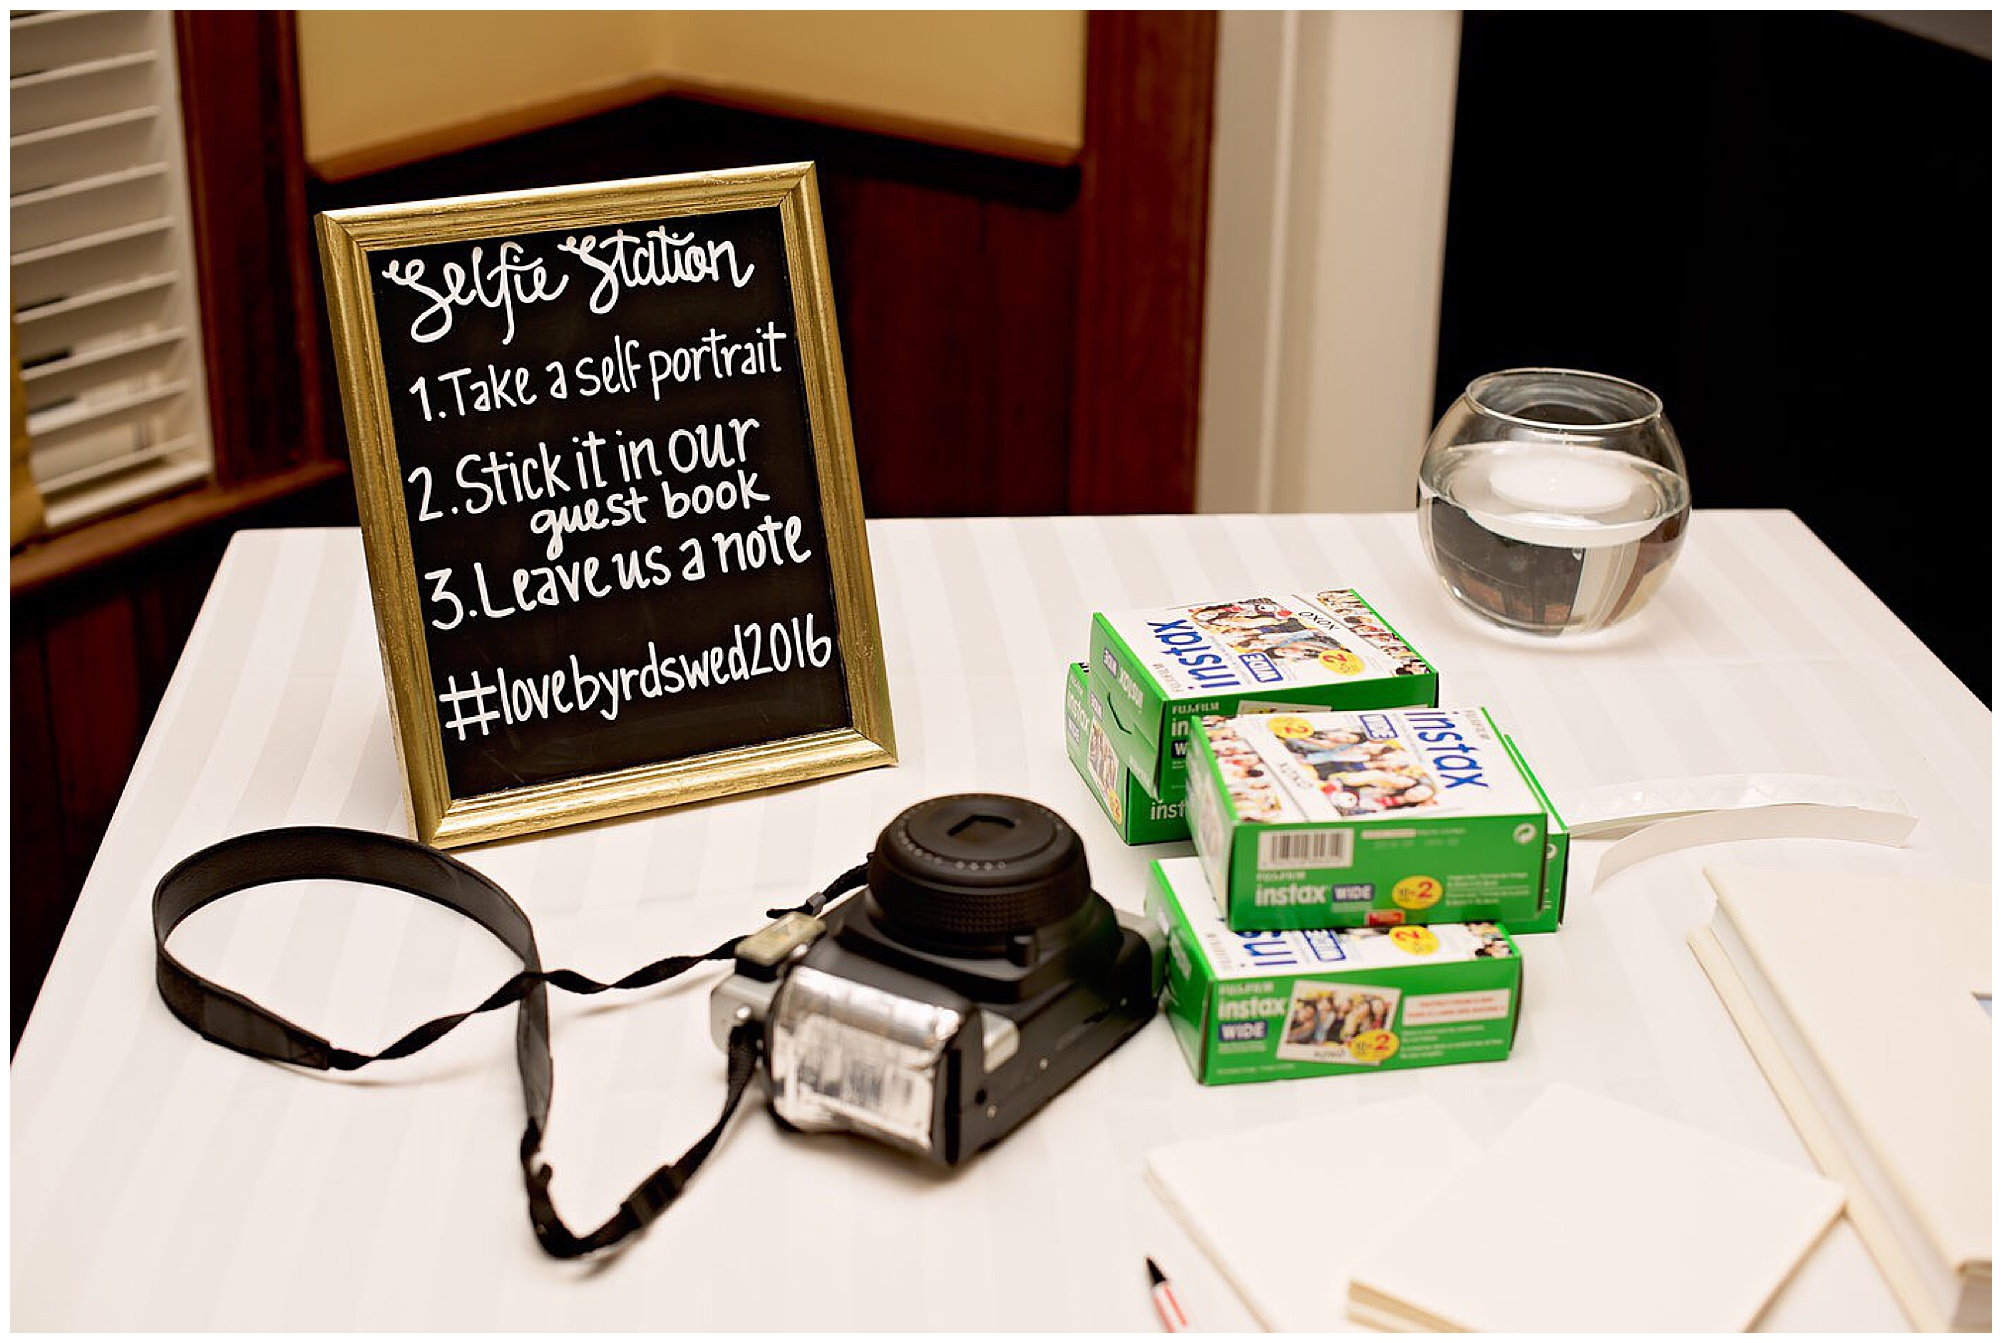 instructions for a selfie station on a table with polaroid camera and film. Photography by Jennifer Madino Photography